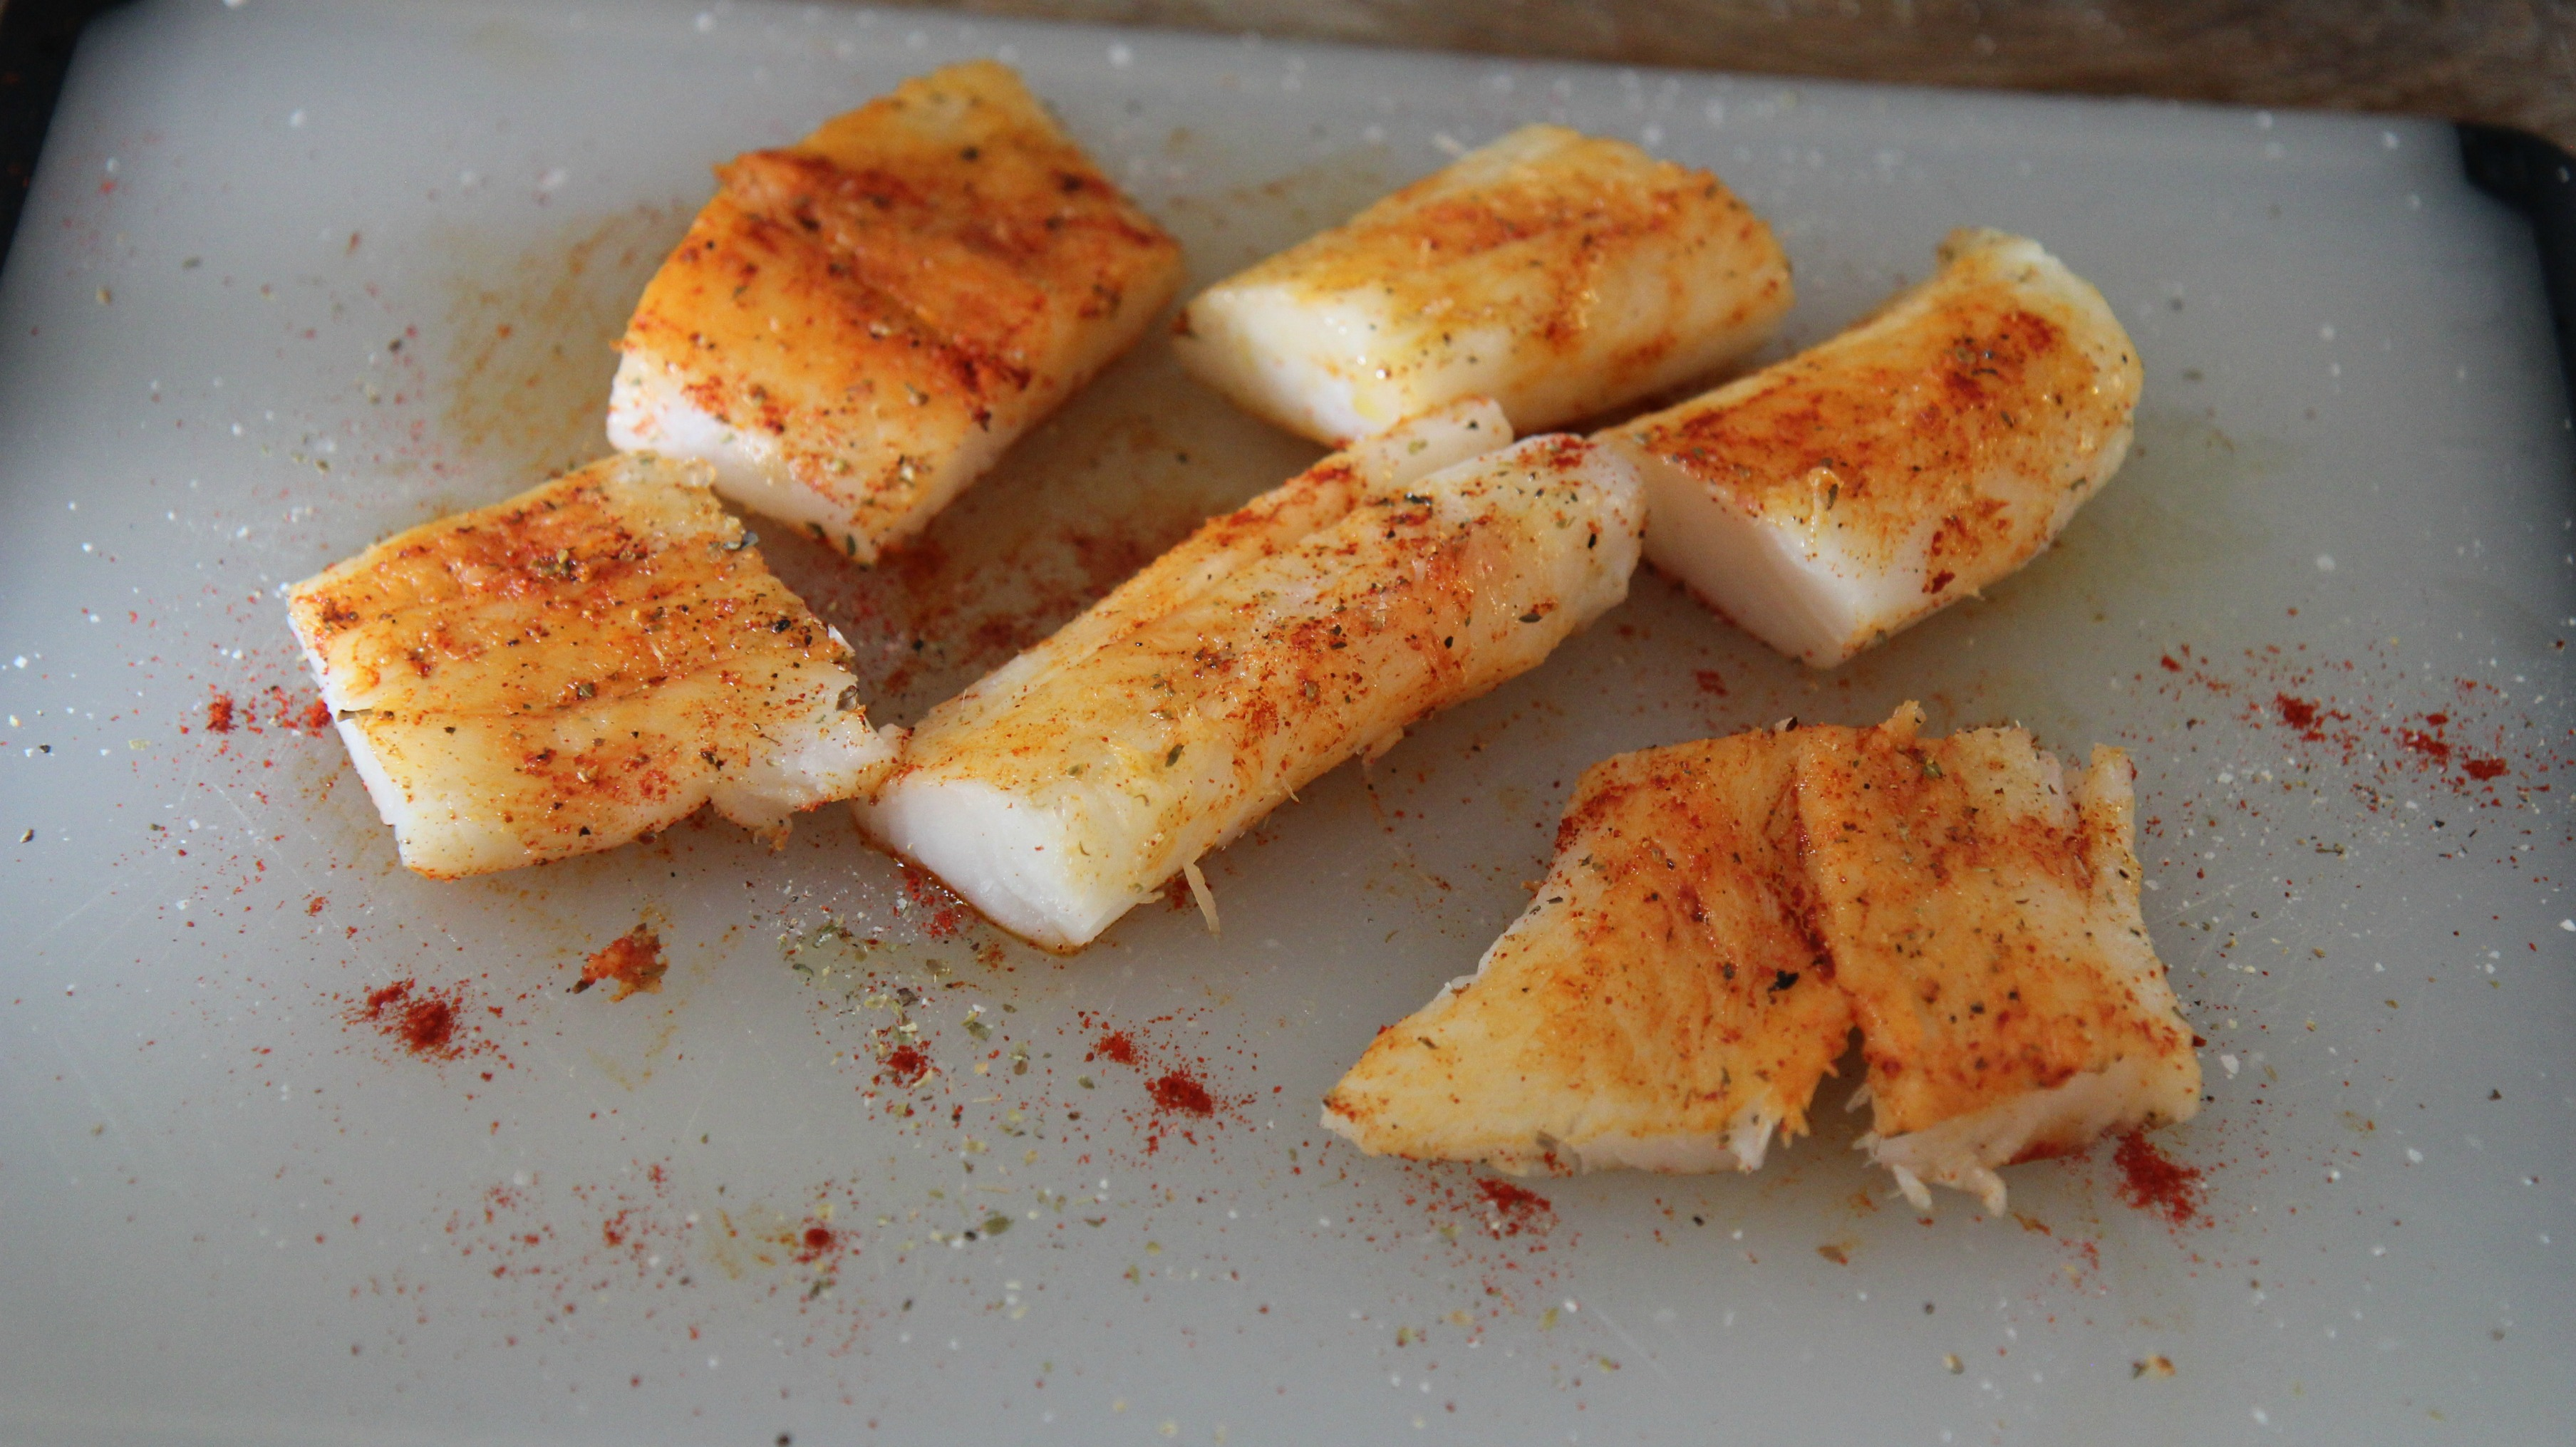 For this skillet cod dinner, you want to season your fish before cooking. Use a blend of spices you love, like chili powder for a little spice.